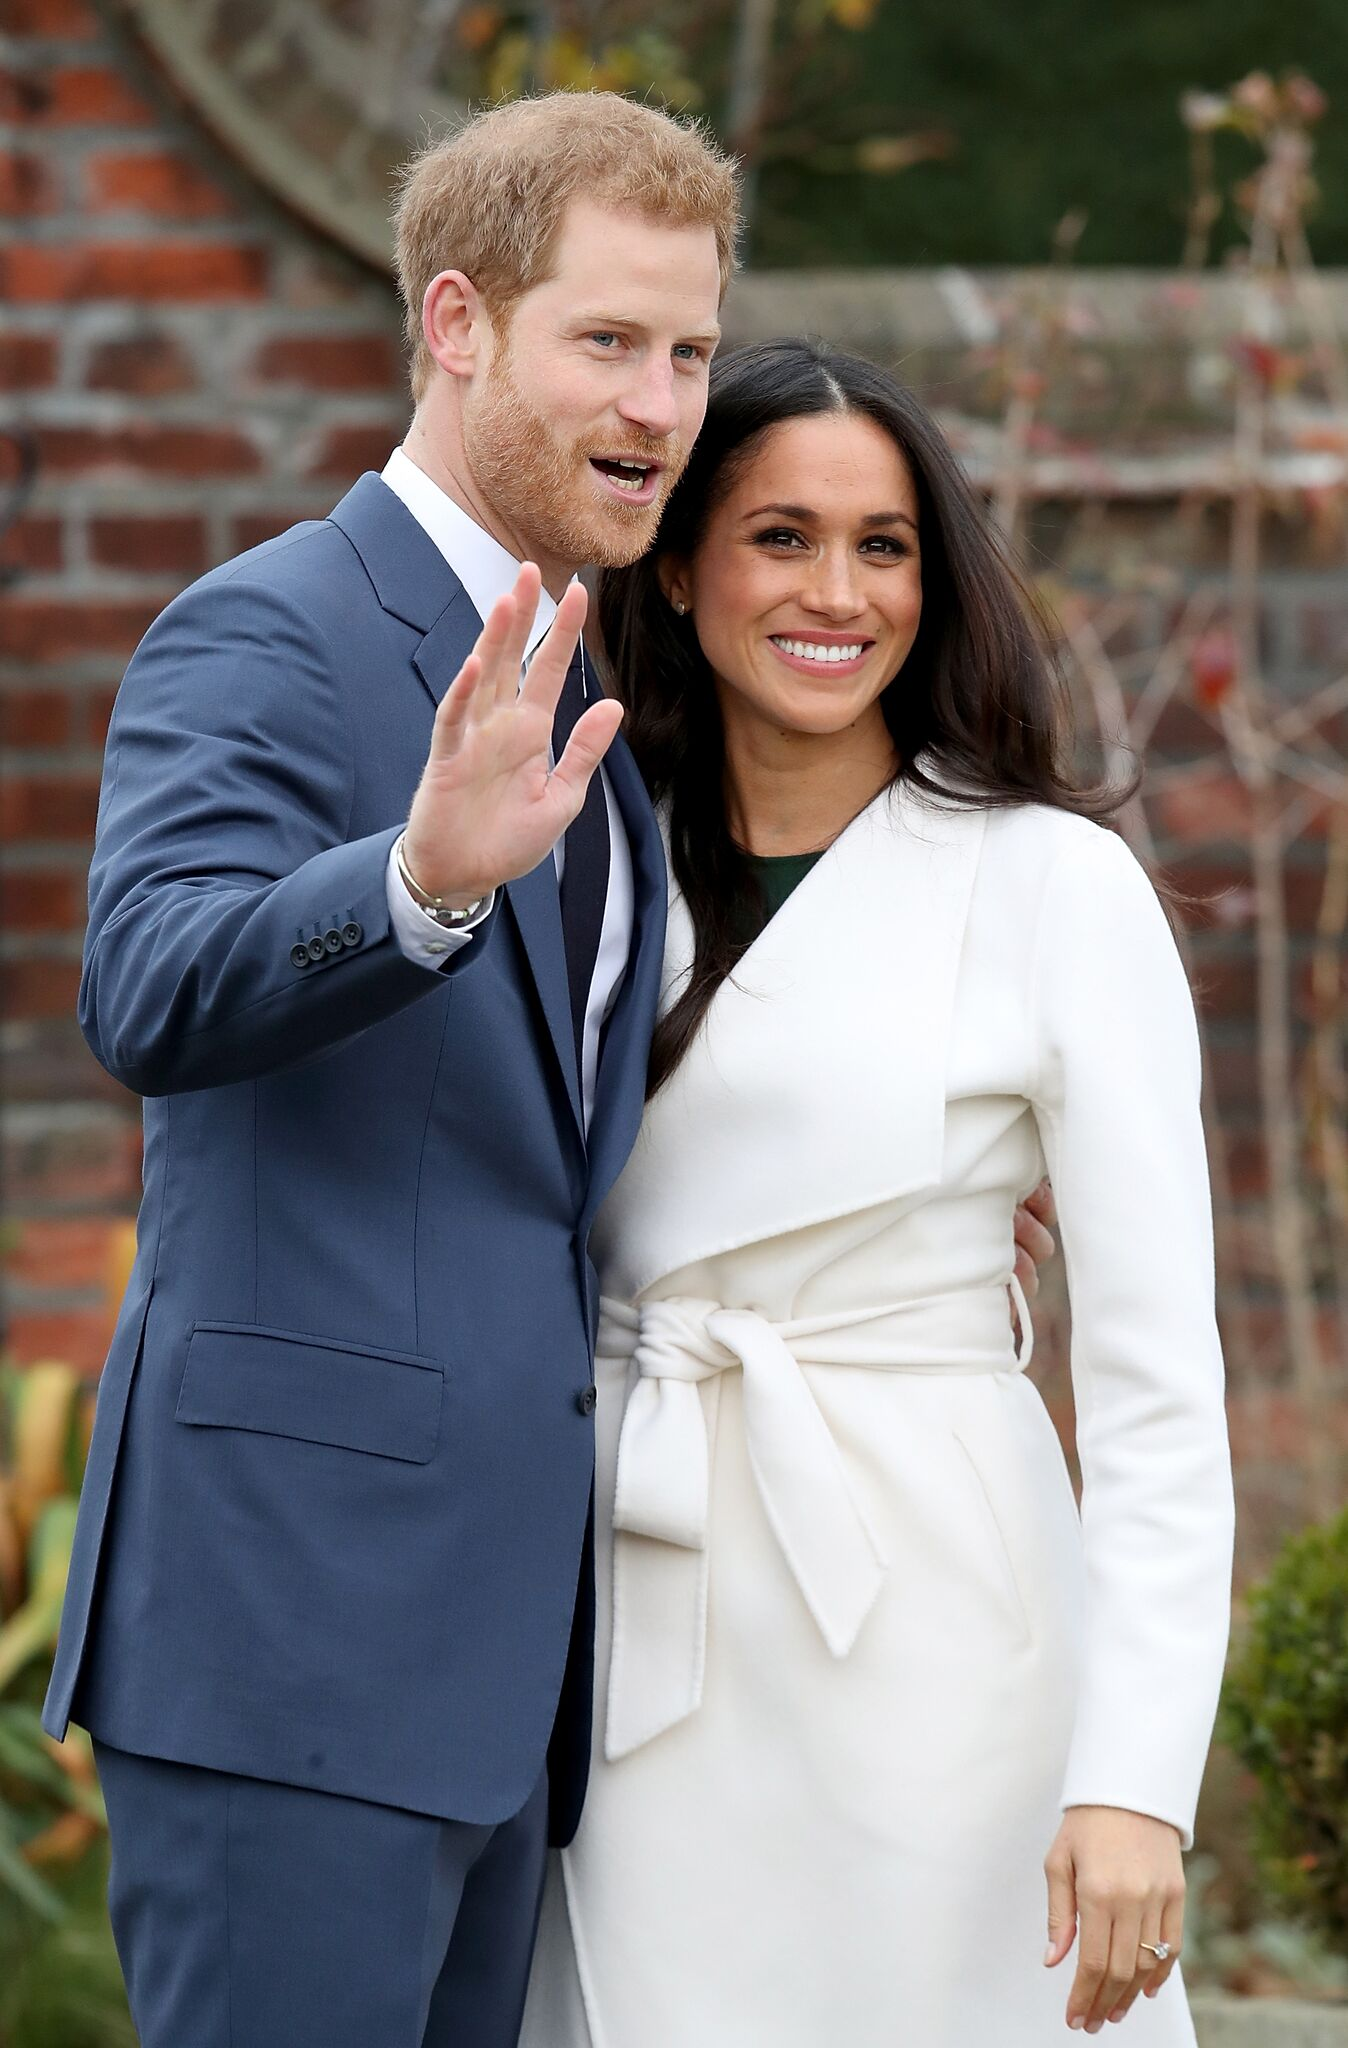 Prince Harry and actress Meghan Markle during an official photocall to announce their engagement at The Sunken Gardens at Kensington Palace | Getty Images